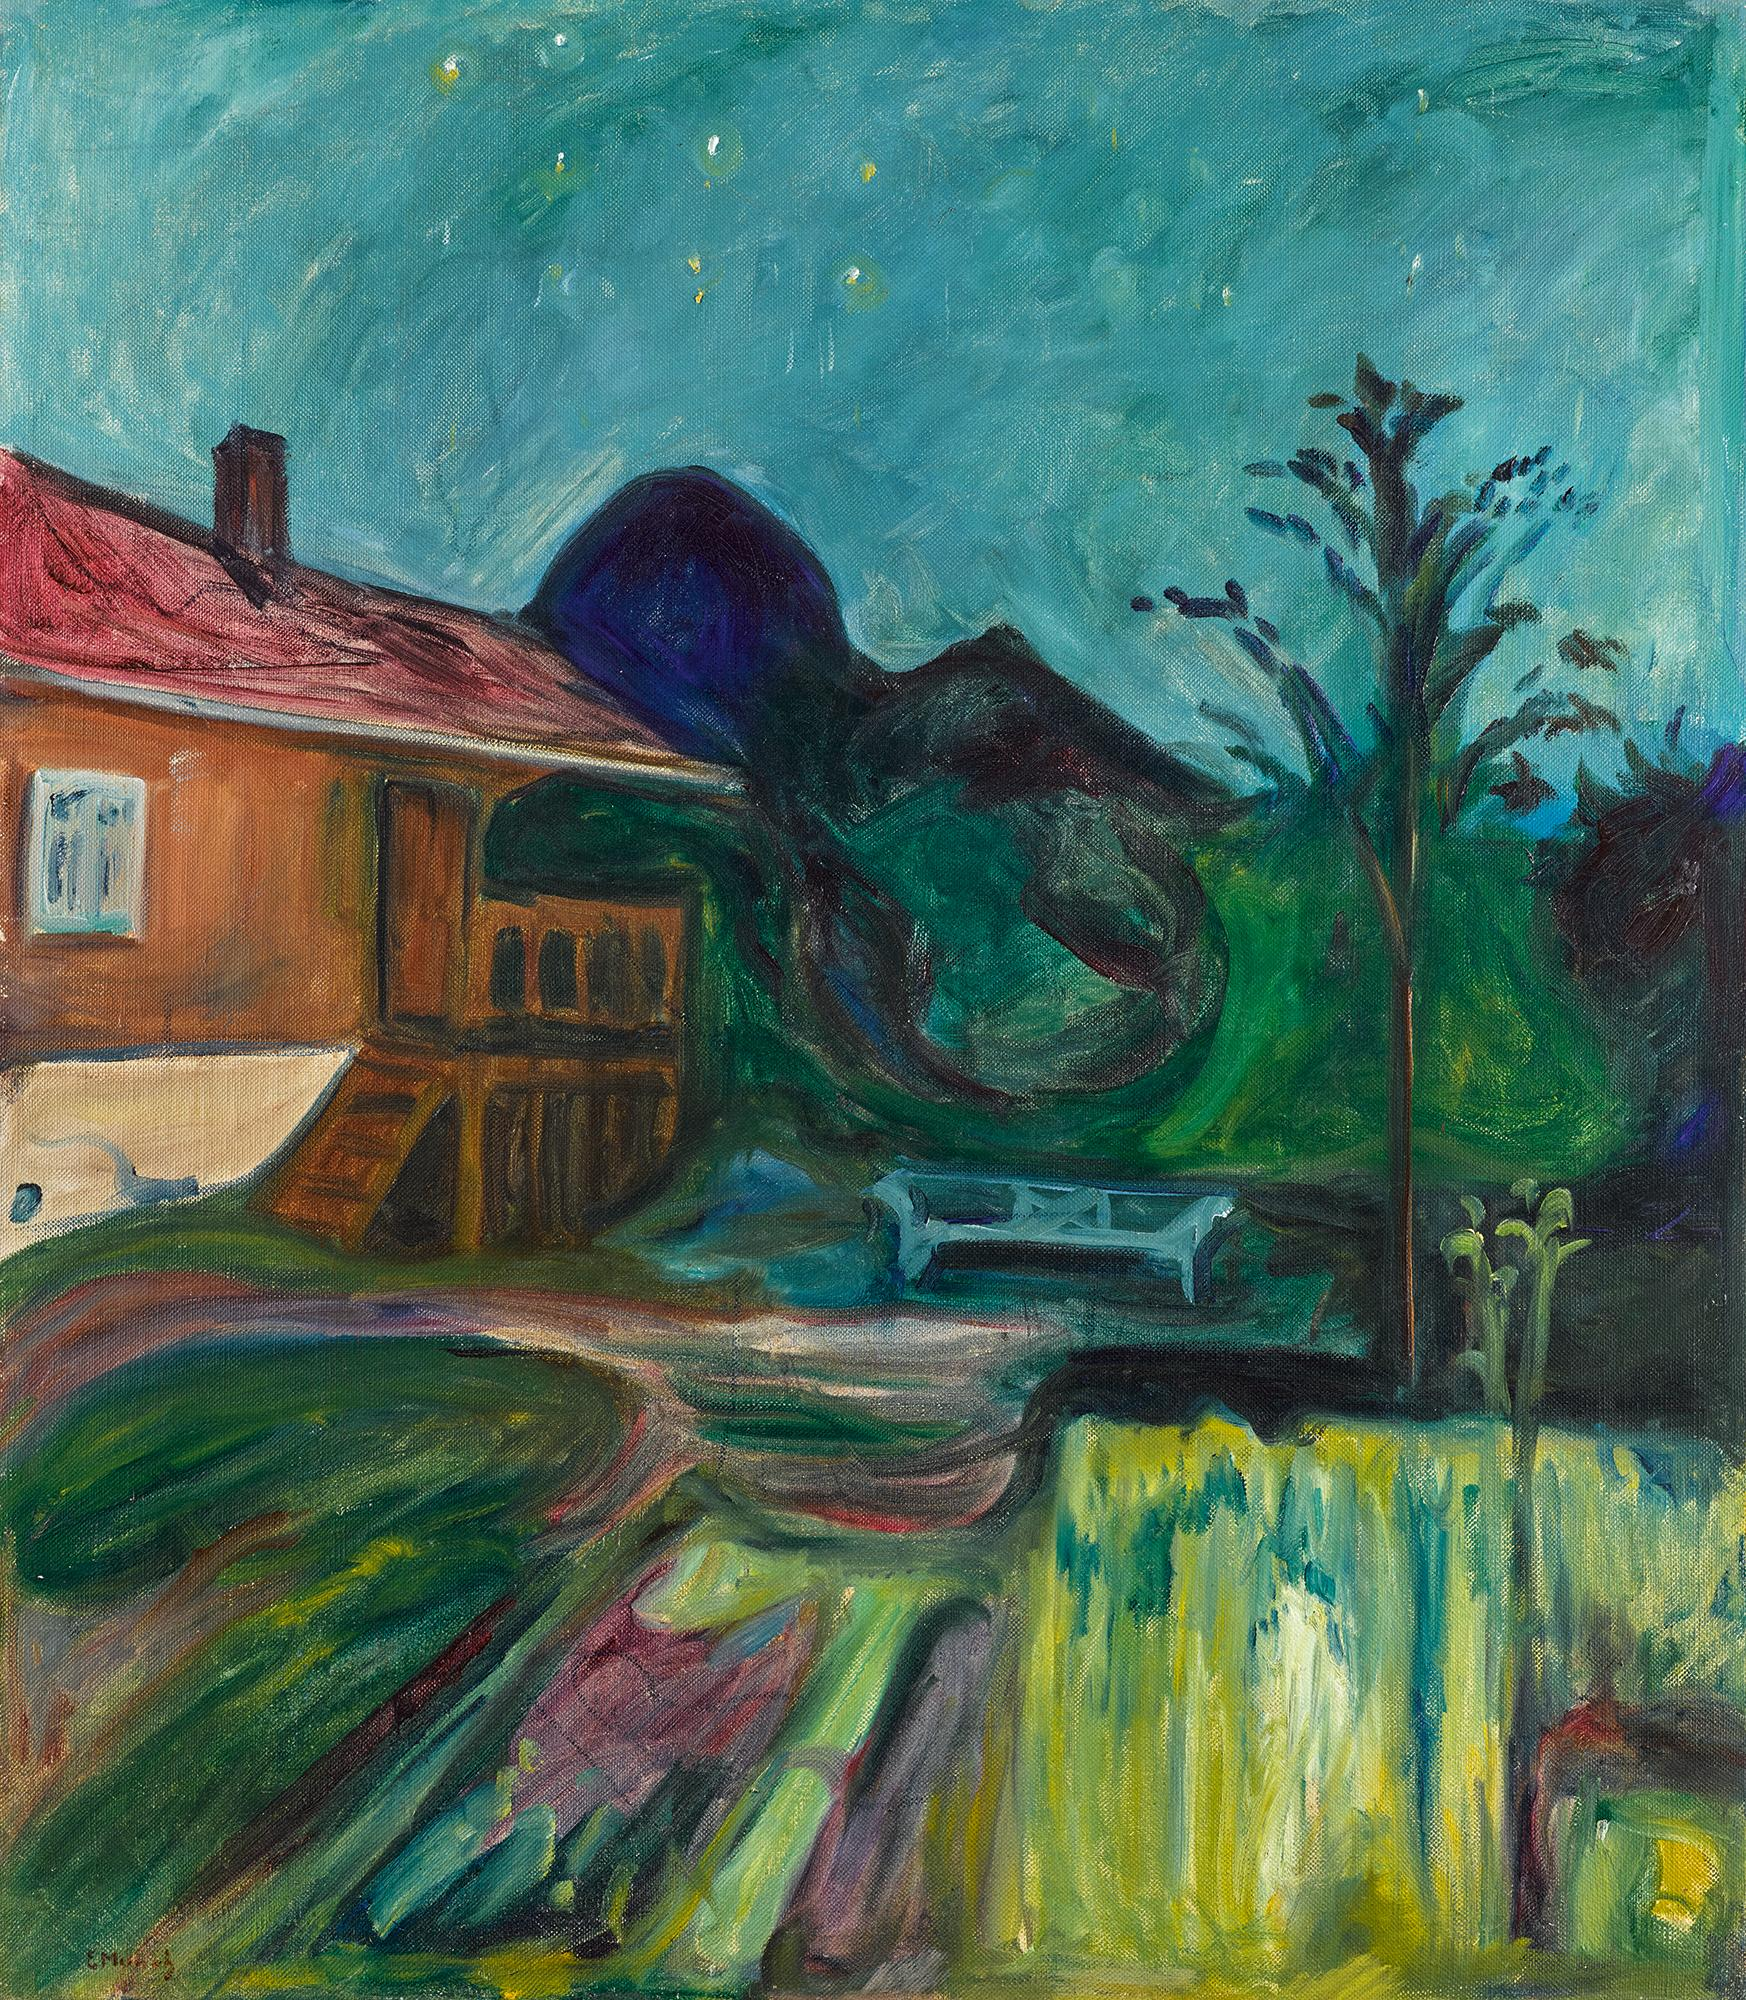 Edvard Munch Biography Artwork Galleries Online Blouin Artinfo